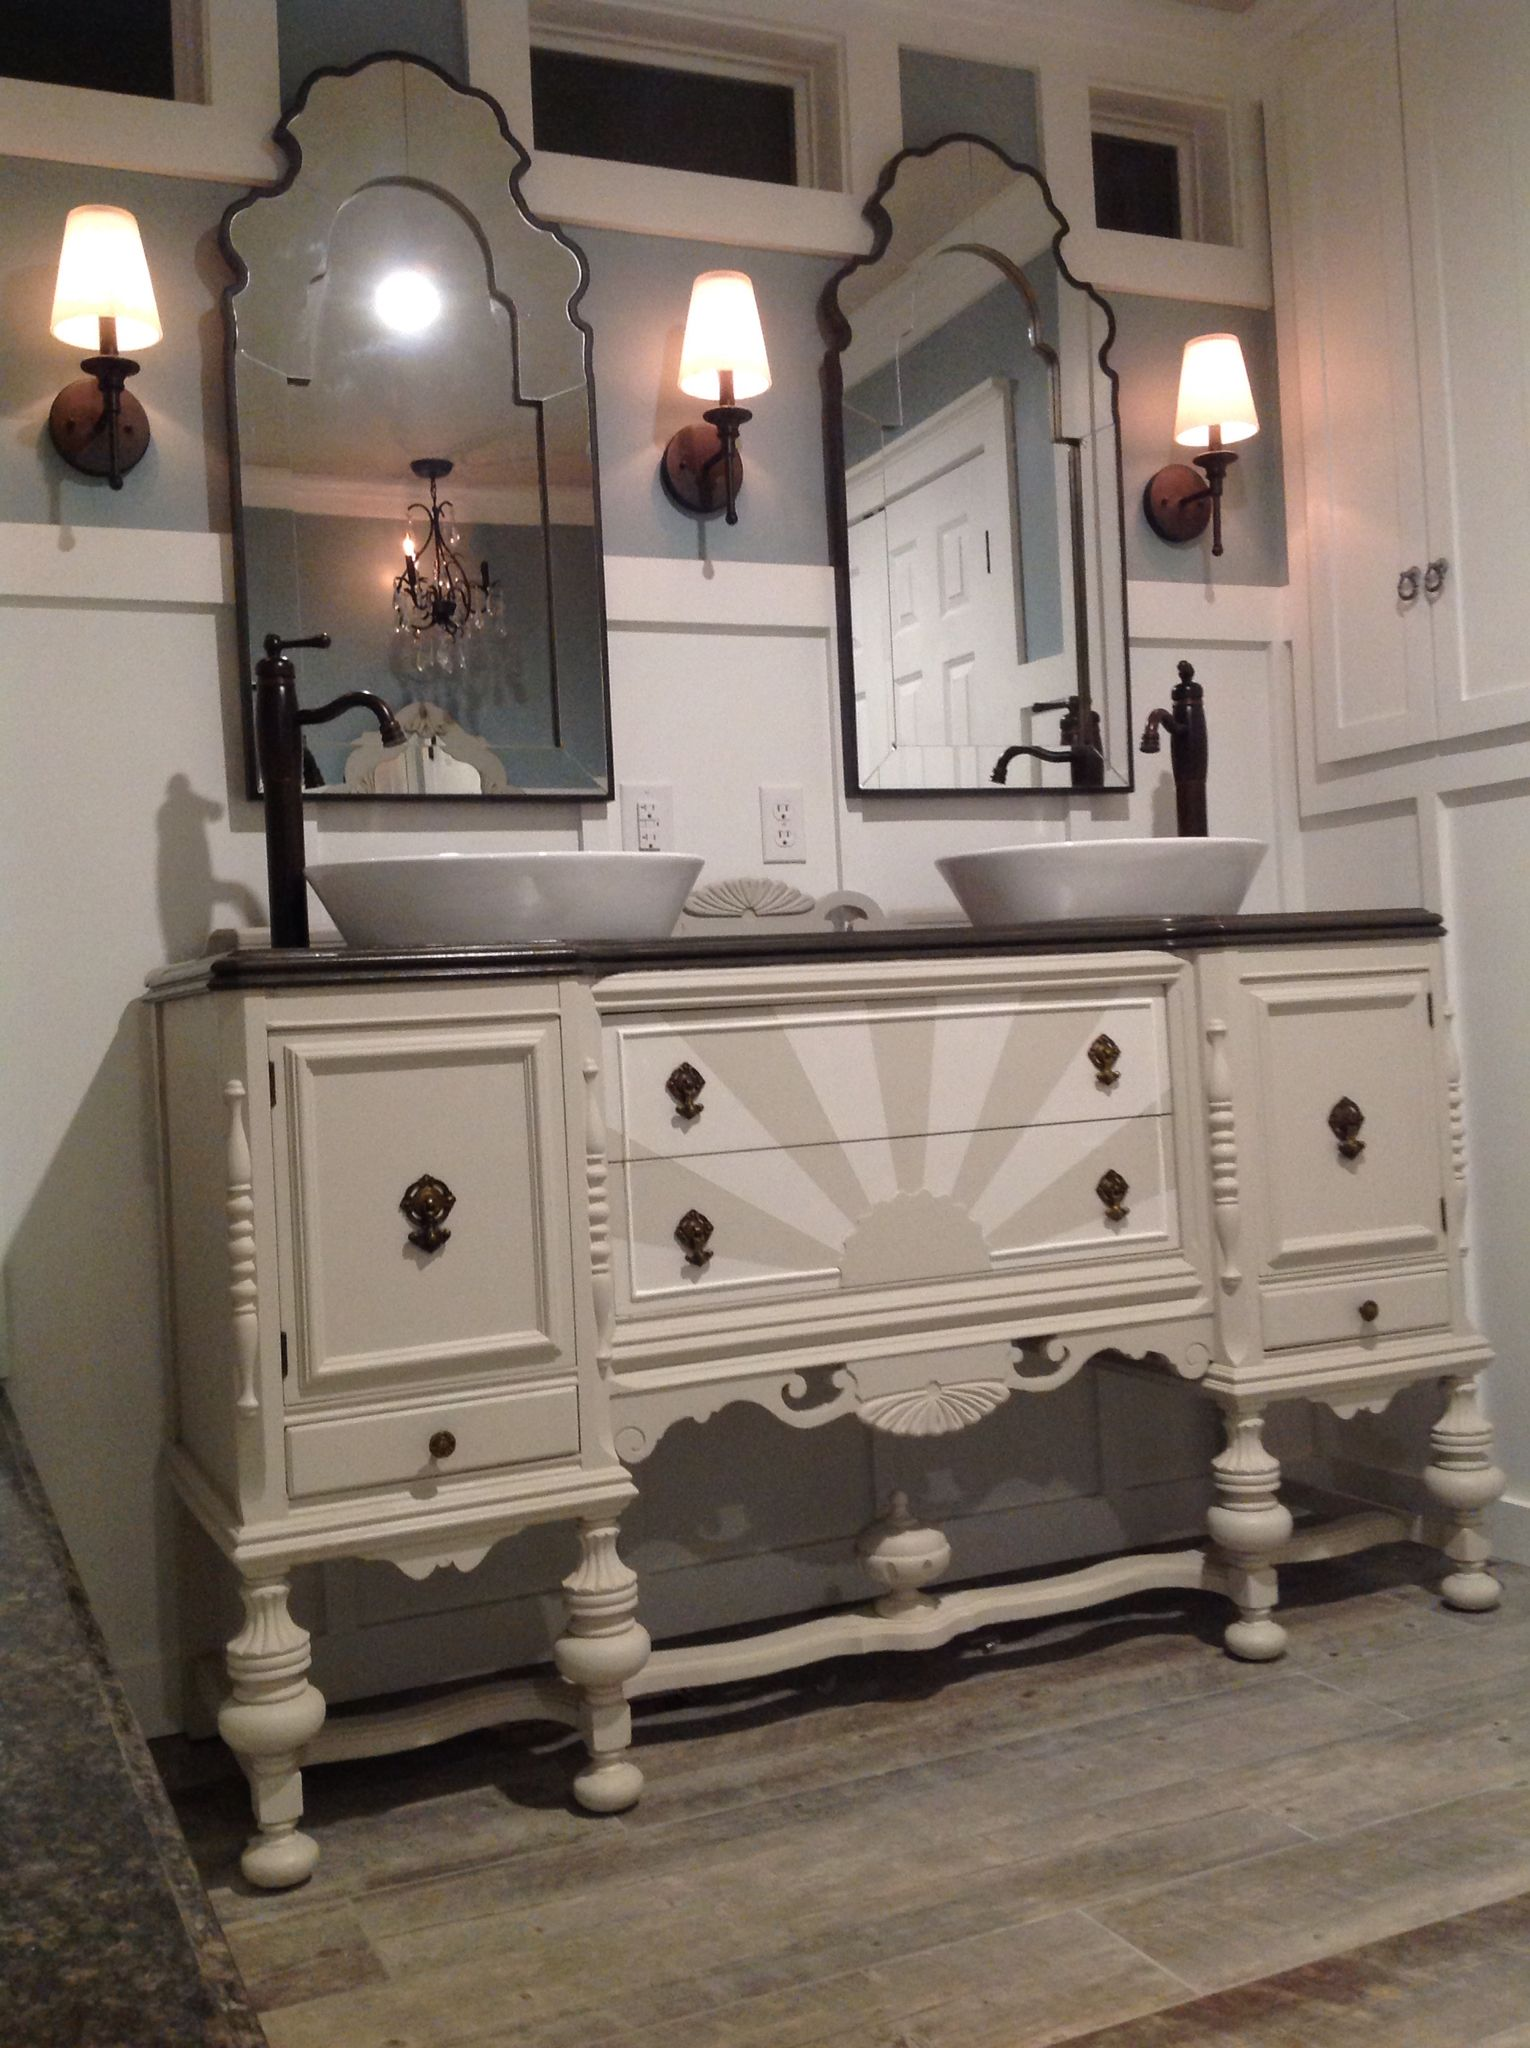 Our antique sideboard buffet repurposed into a bathroom